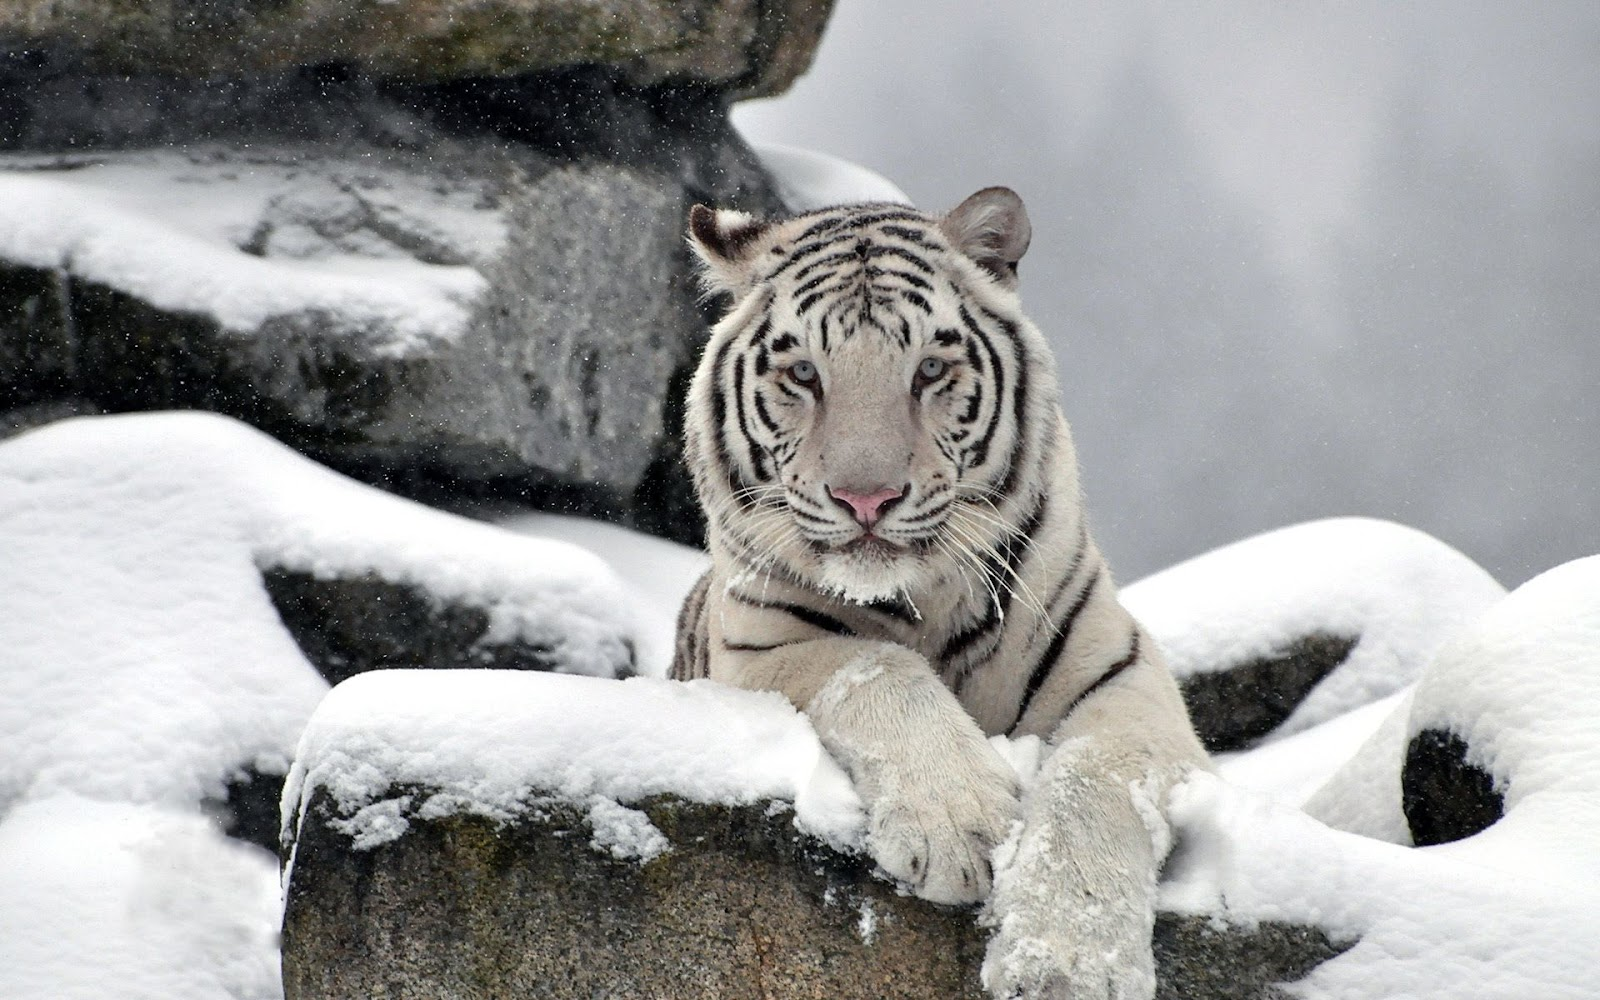 White Tiger In Snow Wallpaper Hd